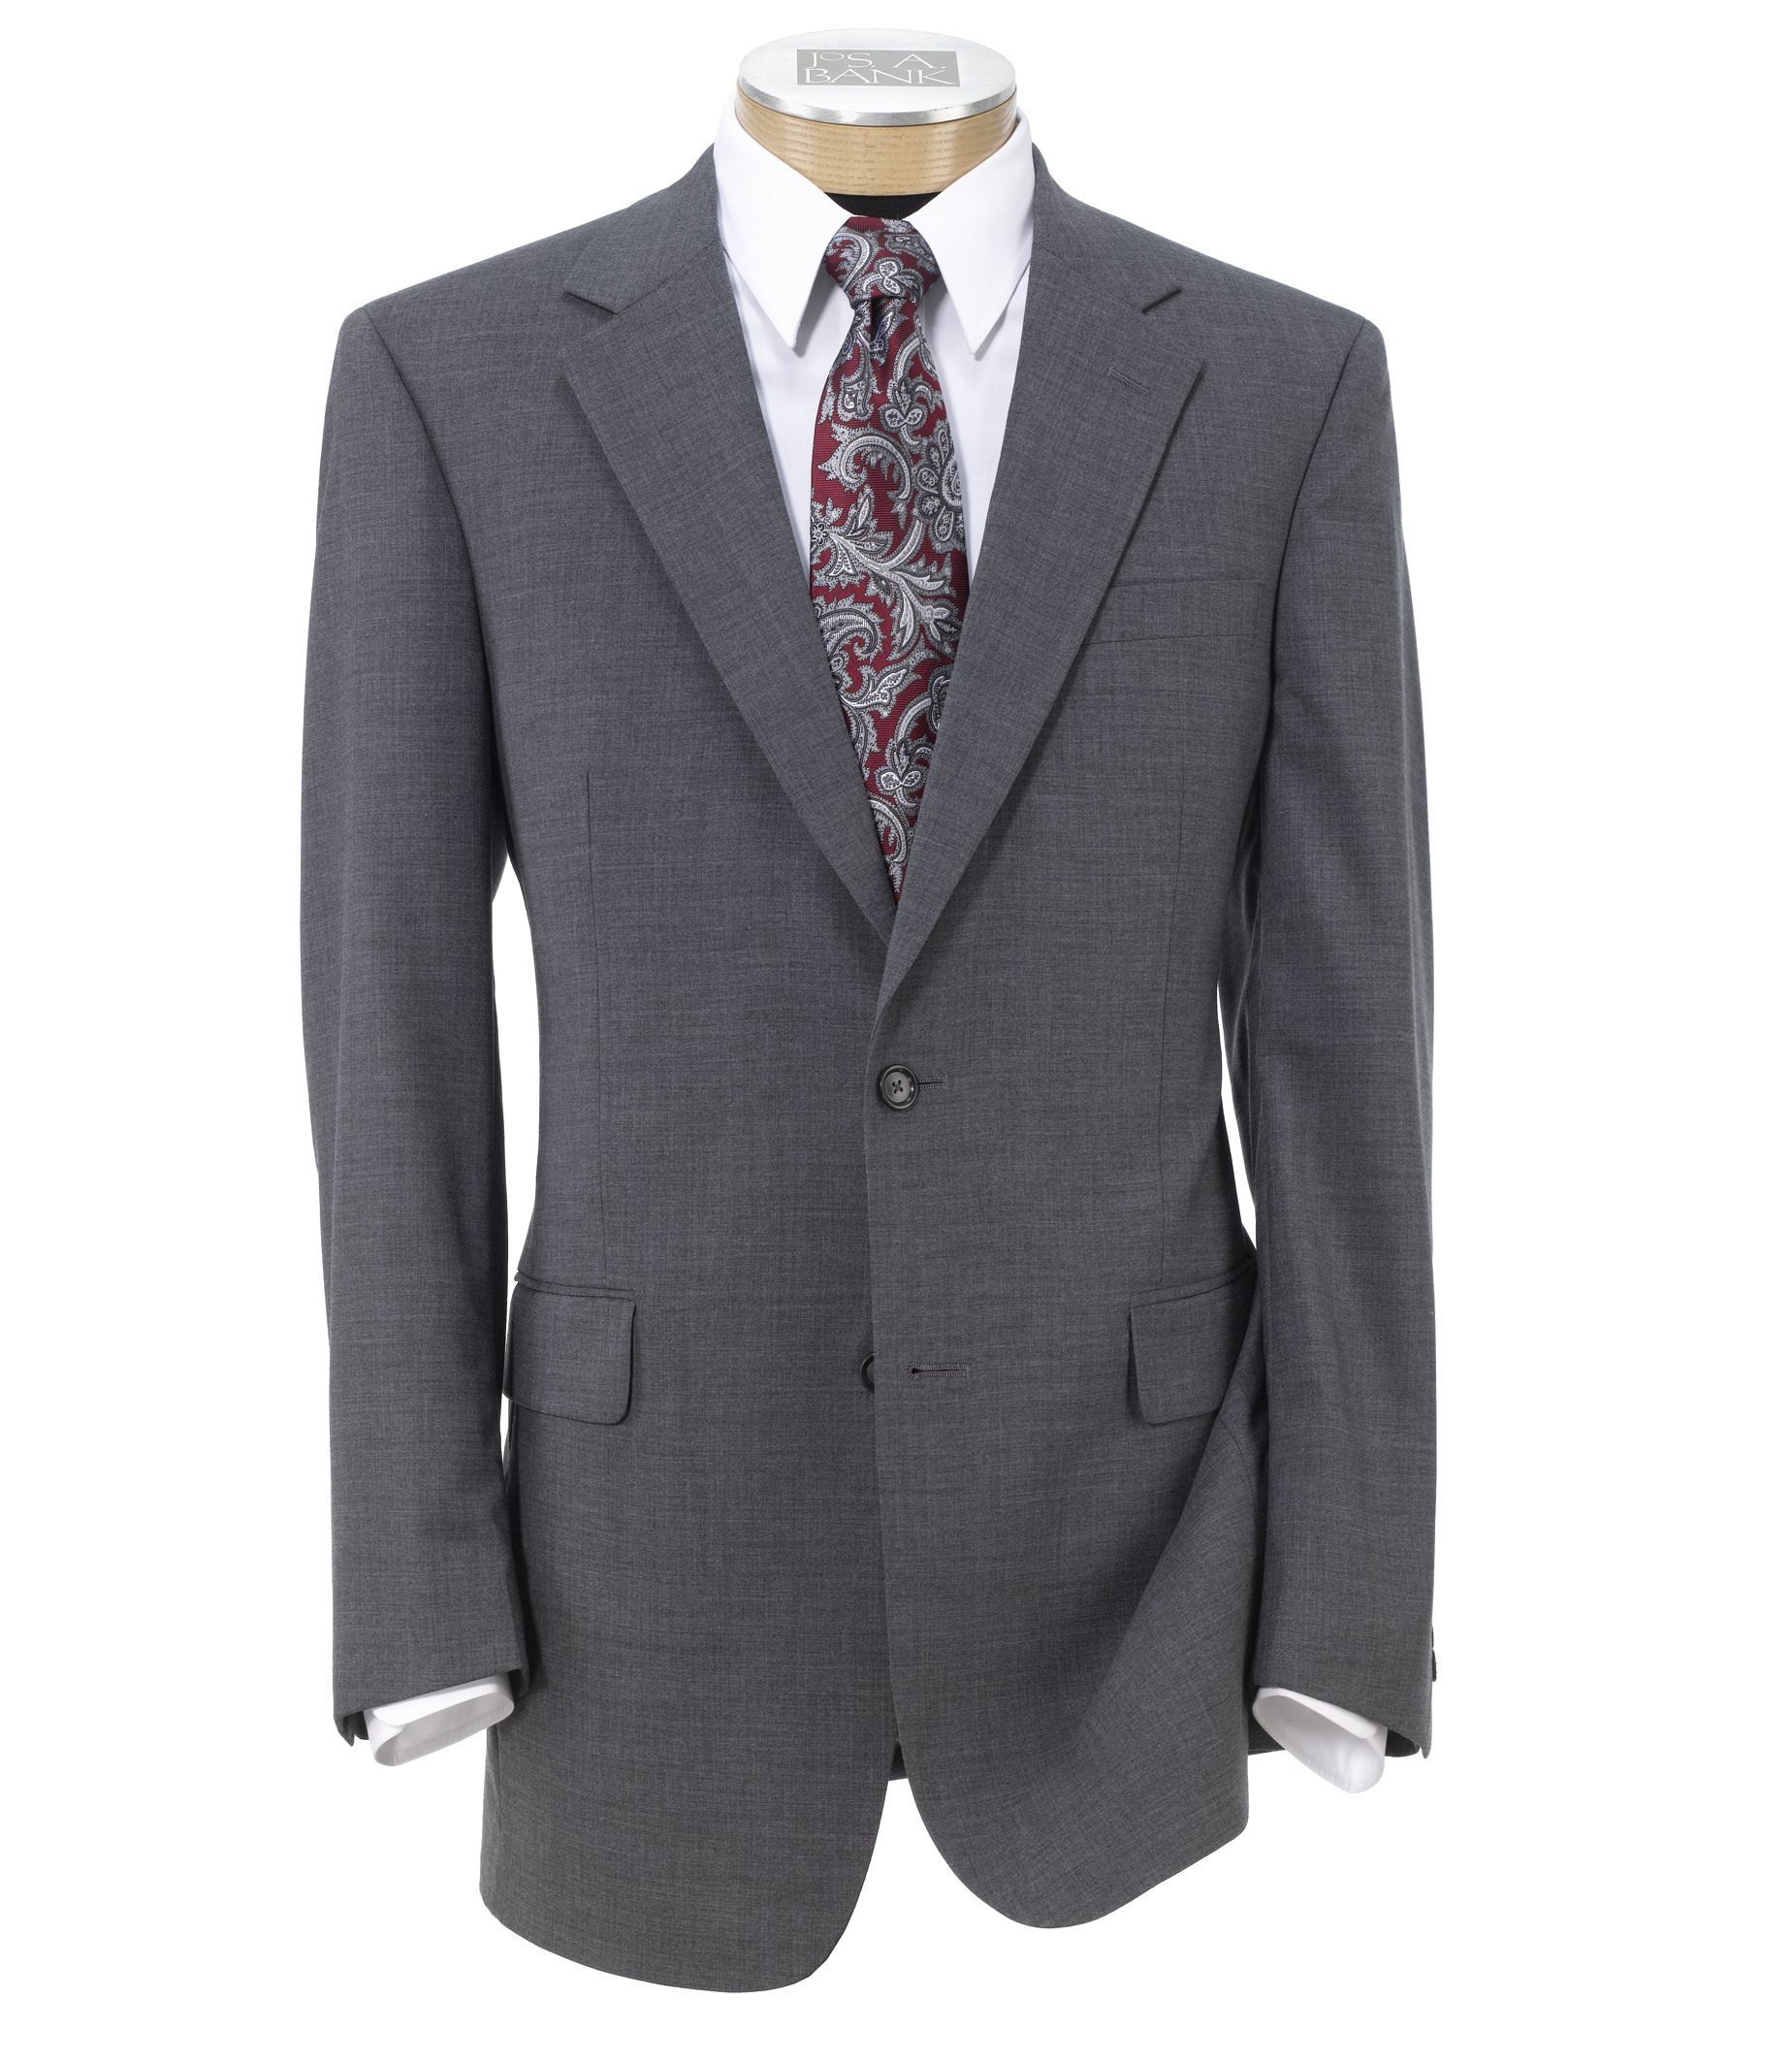 Executive 2-Button Wool Suit with Plain Front Trousers Extended Sizes - Cambridge Gray